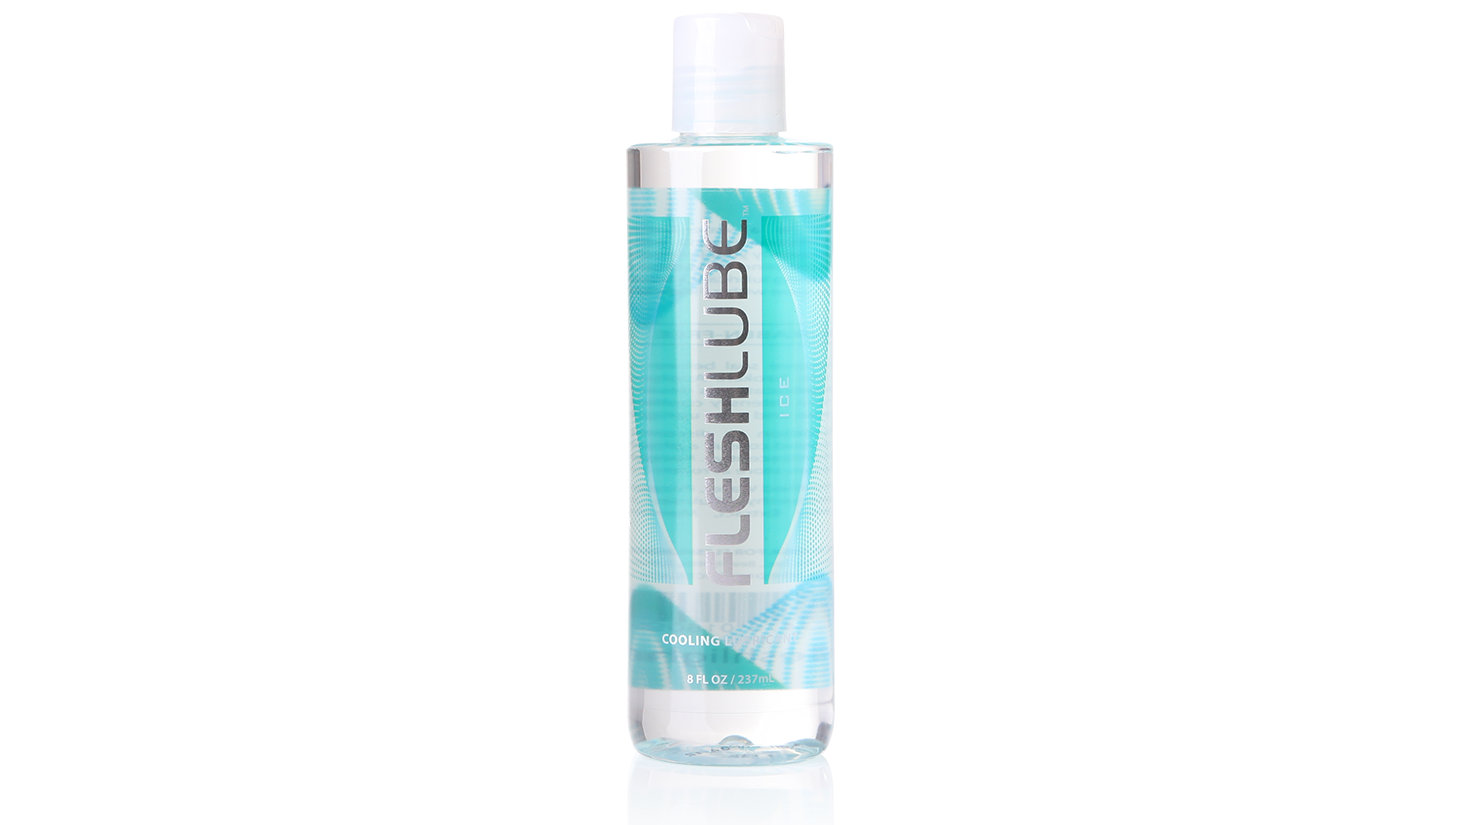 Fleshlube® Ice (8 oz) slider image.